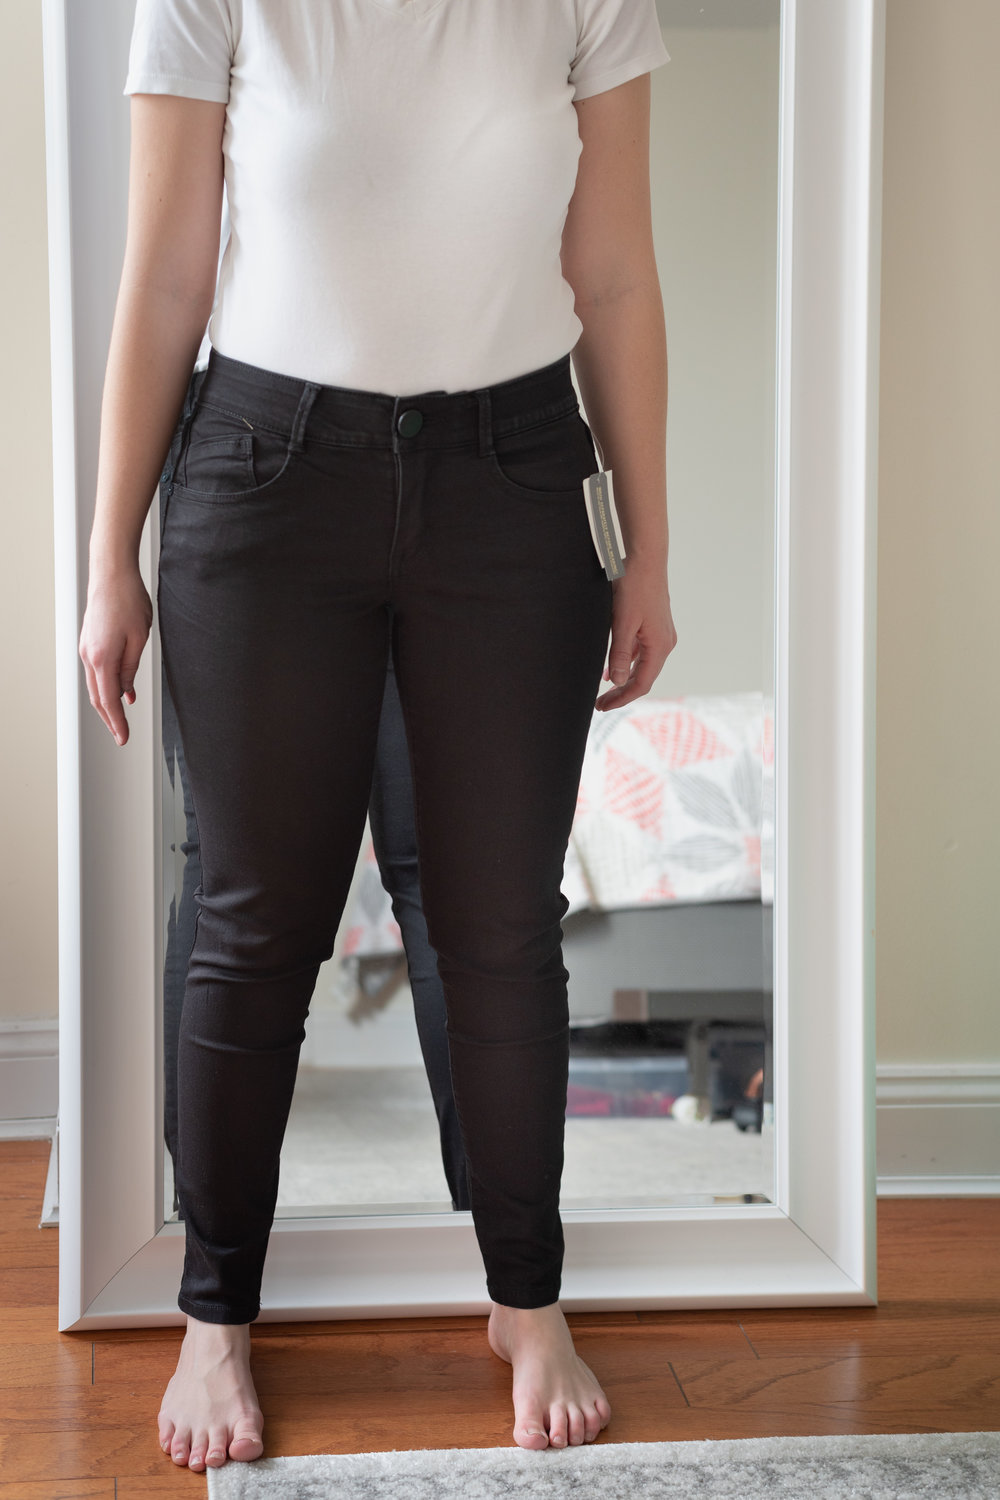 Wit & Wisdom Ab-solution Stretch Skinny Jeans - Size 6 Petite